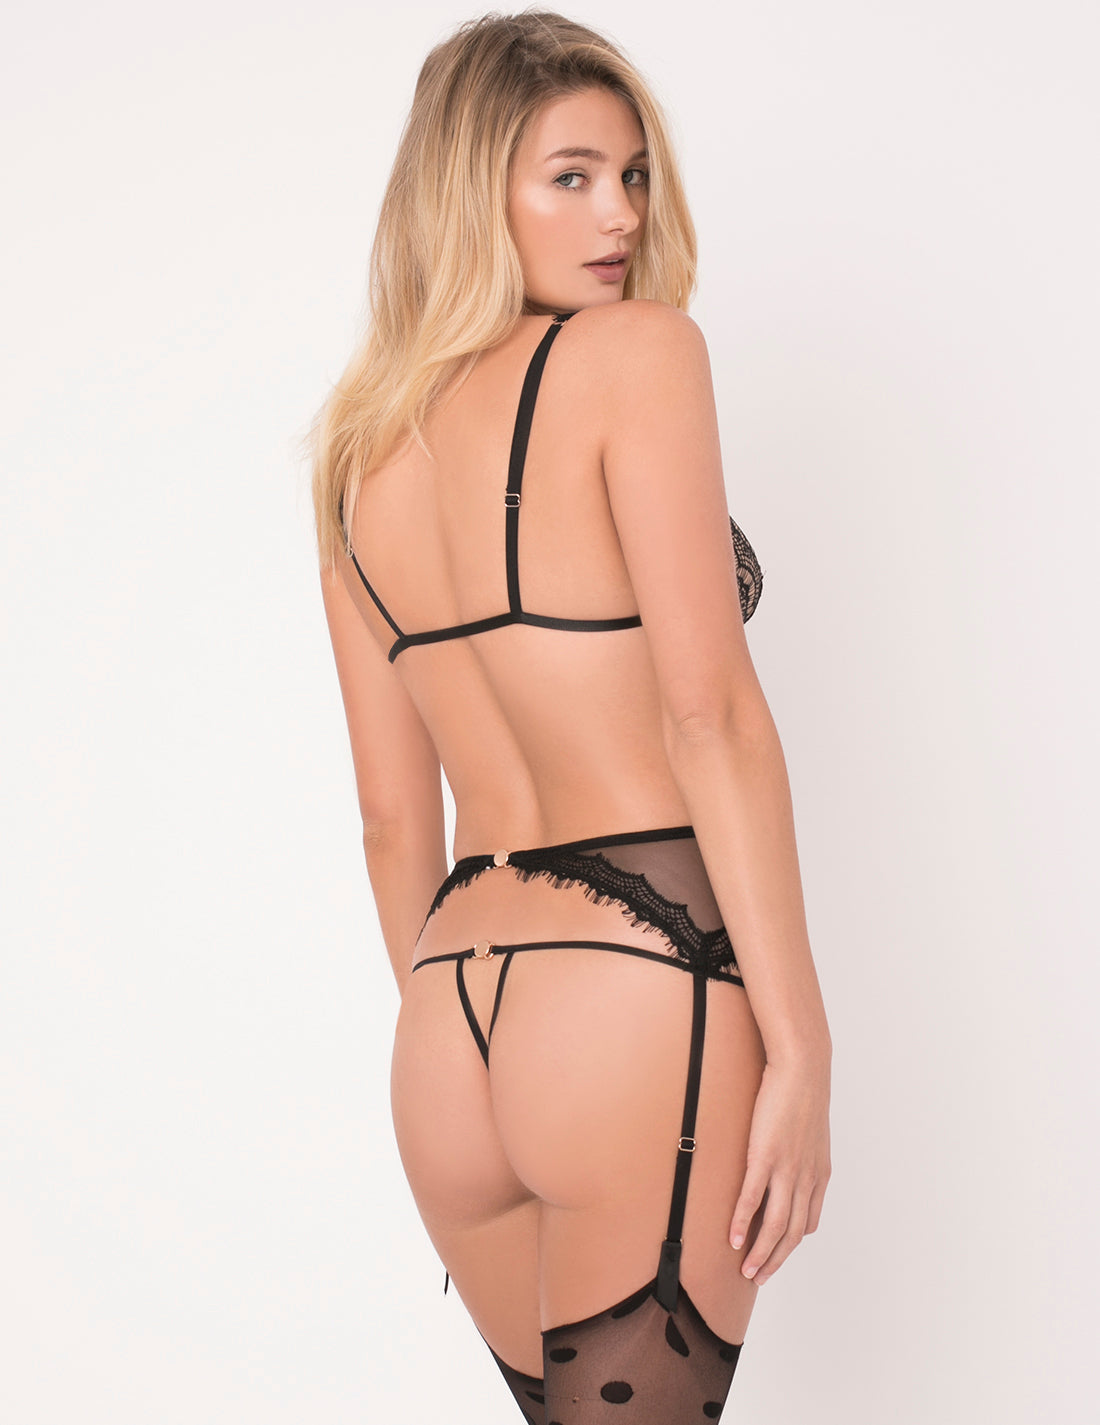 Black Lace Ouvert Thong | Mimi Holliday Sexy Lingerie